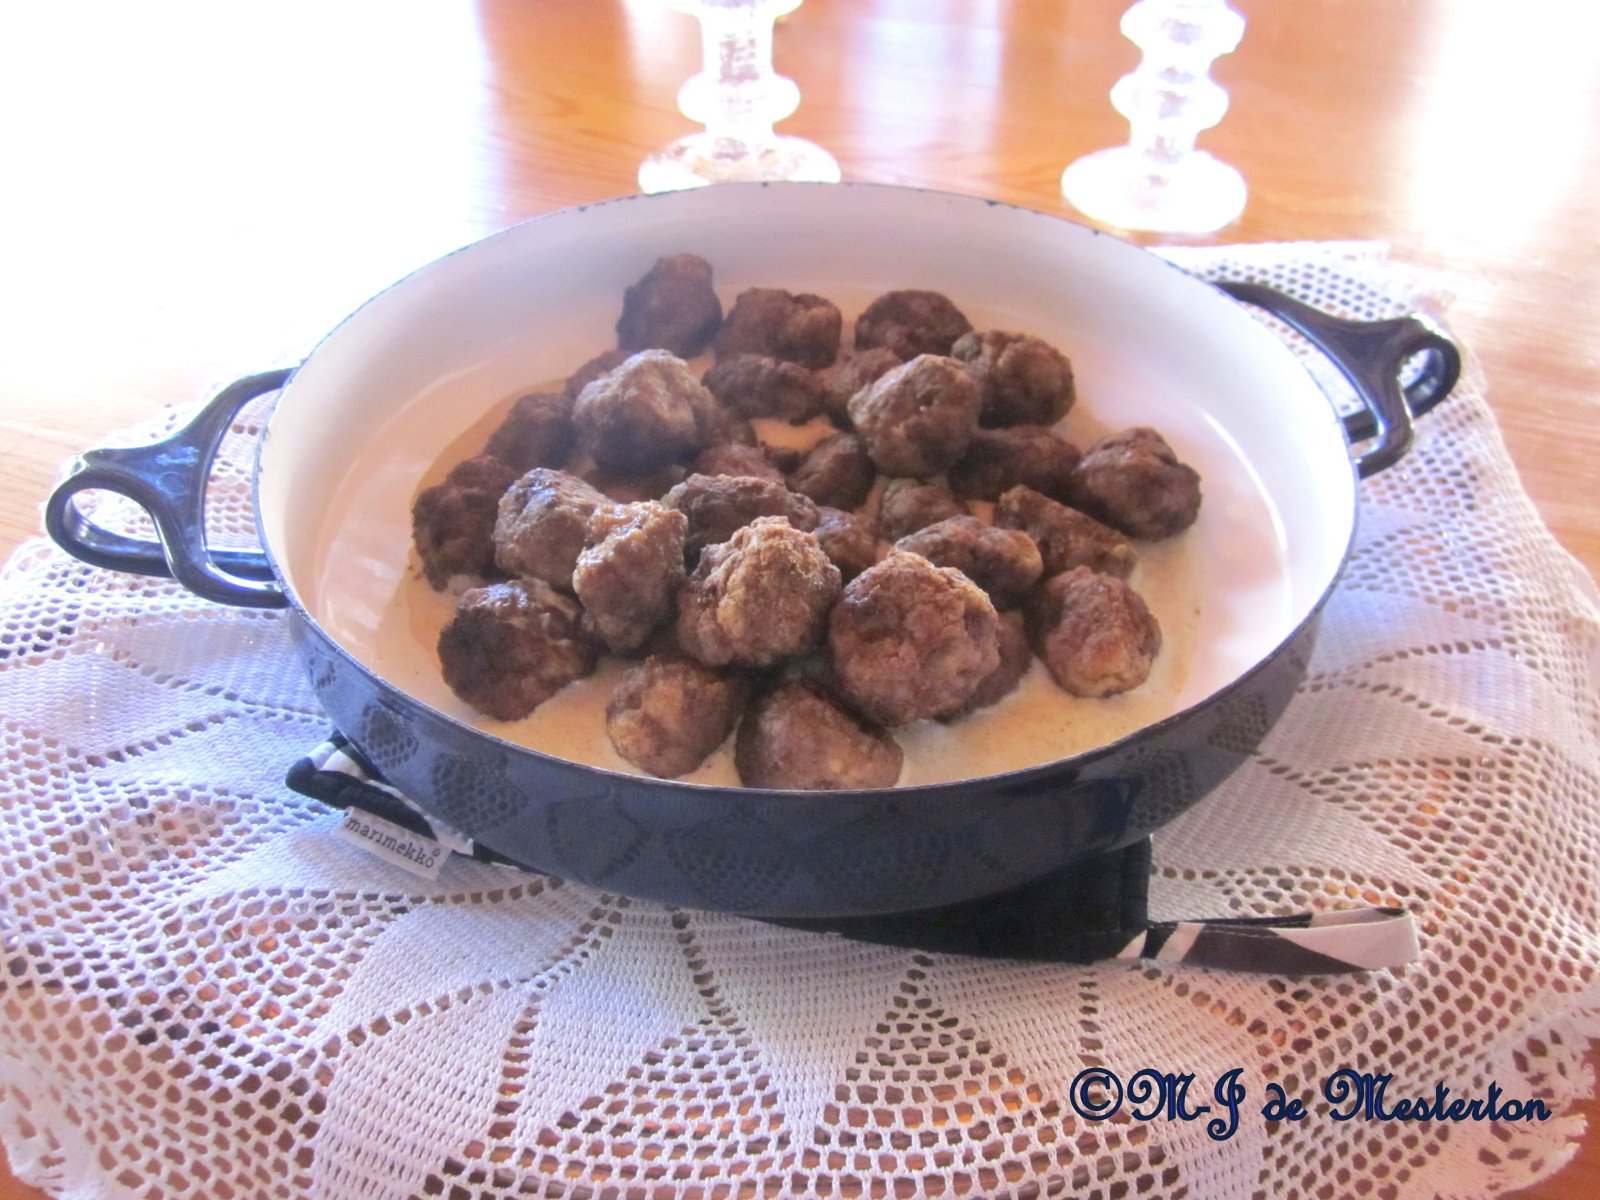 Economical Cooking Swedish Meatballs. 1600 x 1200.Chinese New Year Songs For Young Children